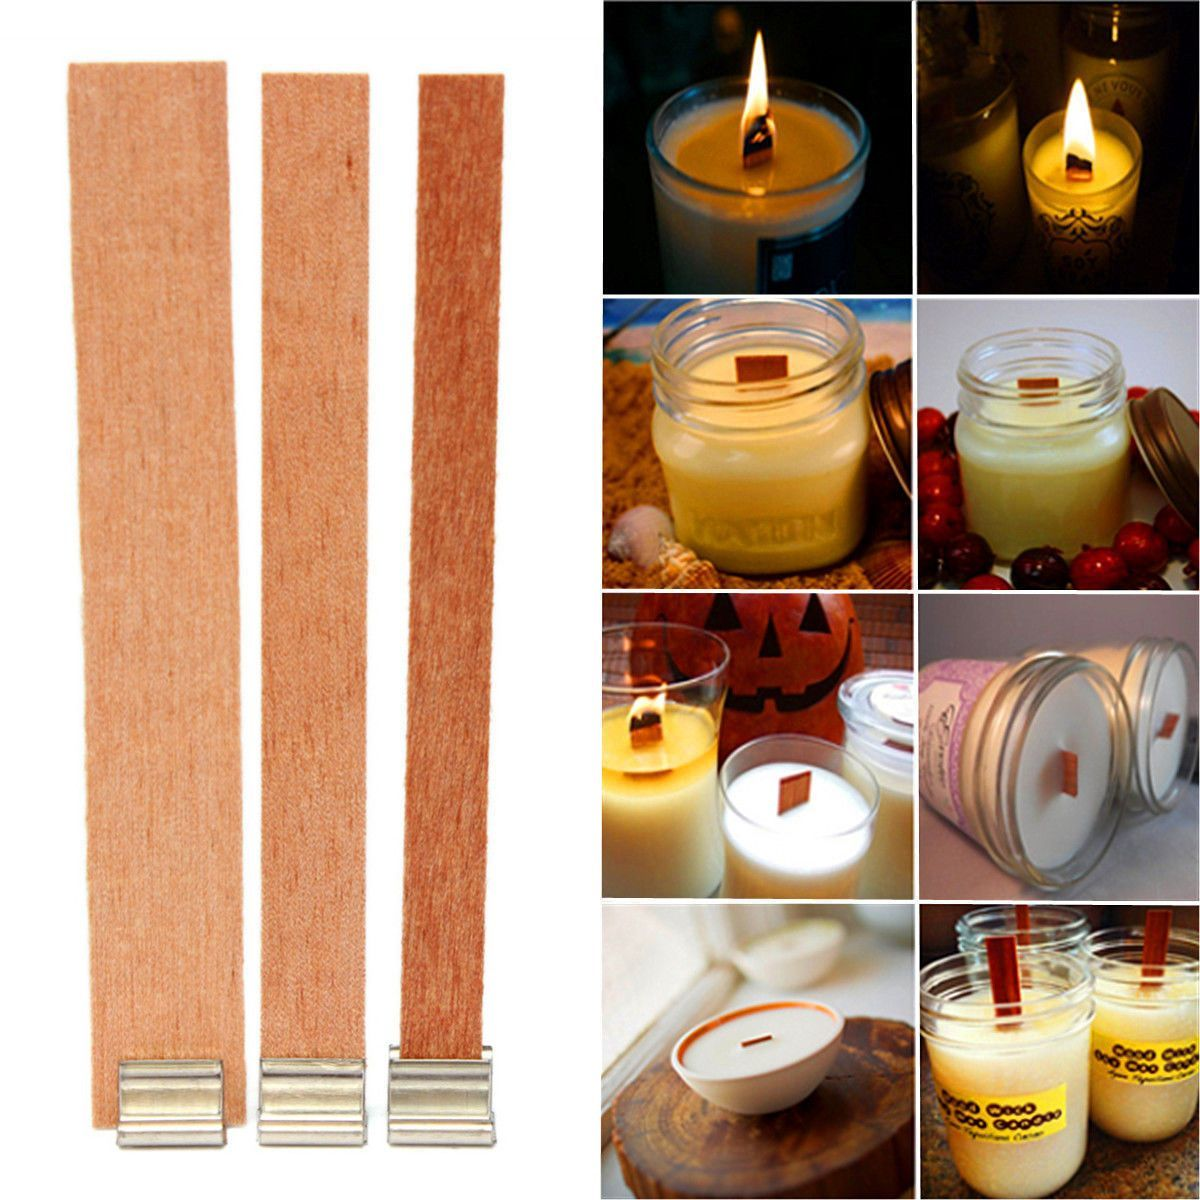 Details about 250pcs Candle Wood Wick Sustainer Tab